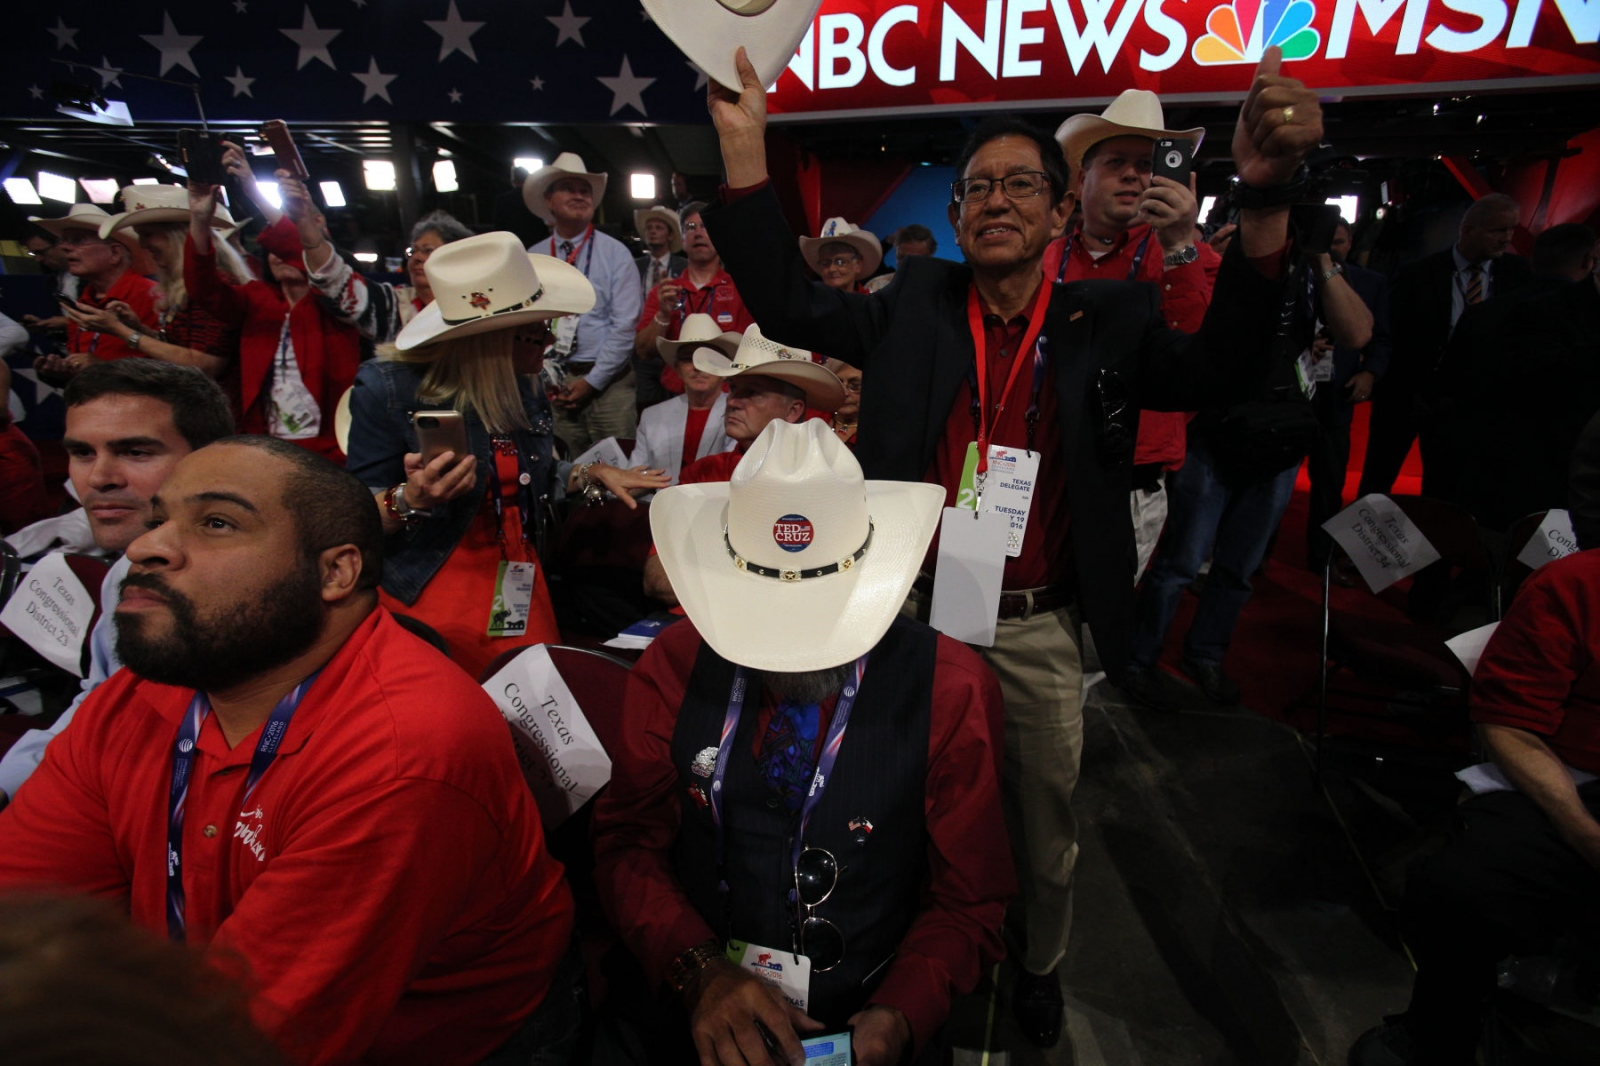 A Texas delegate who is one of the last Cruz supporters in the Texas delegation, surrounded by Trump supporters, at theRepublican National Convention. July 20, 2016 (Kevin C Downs).